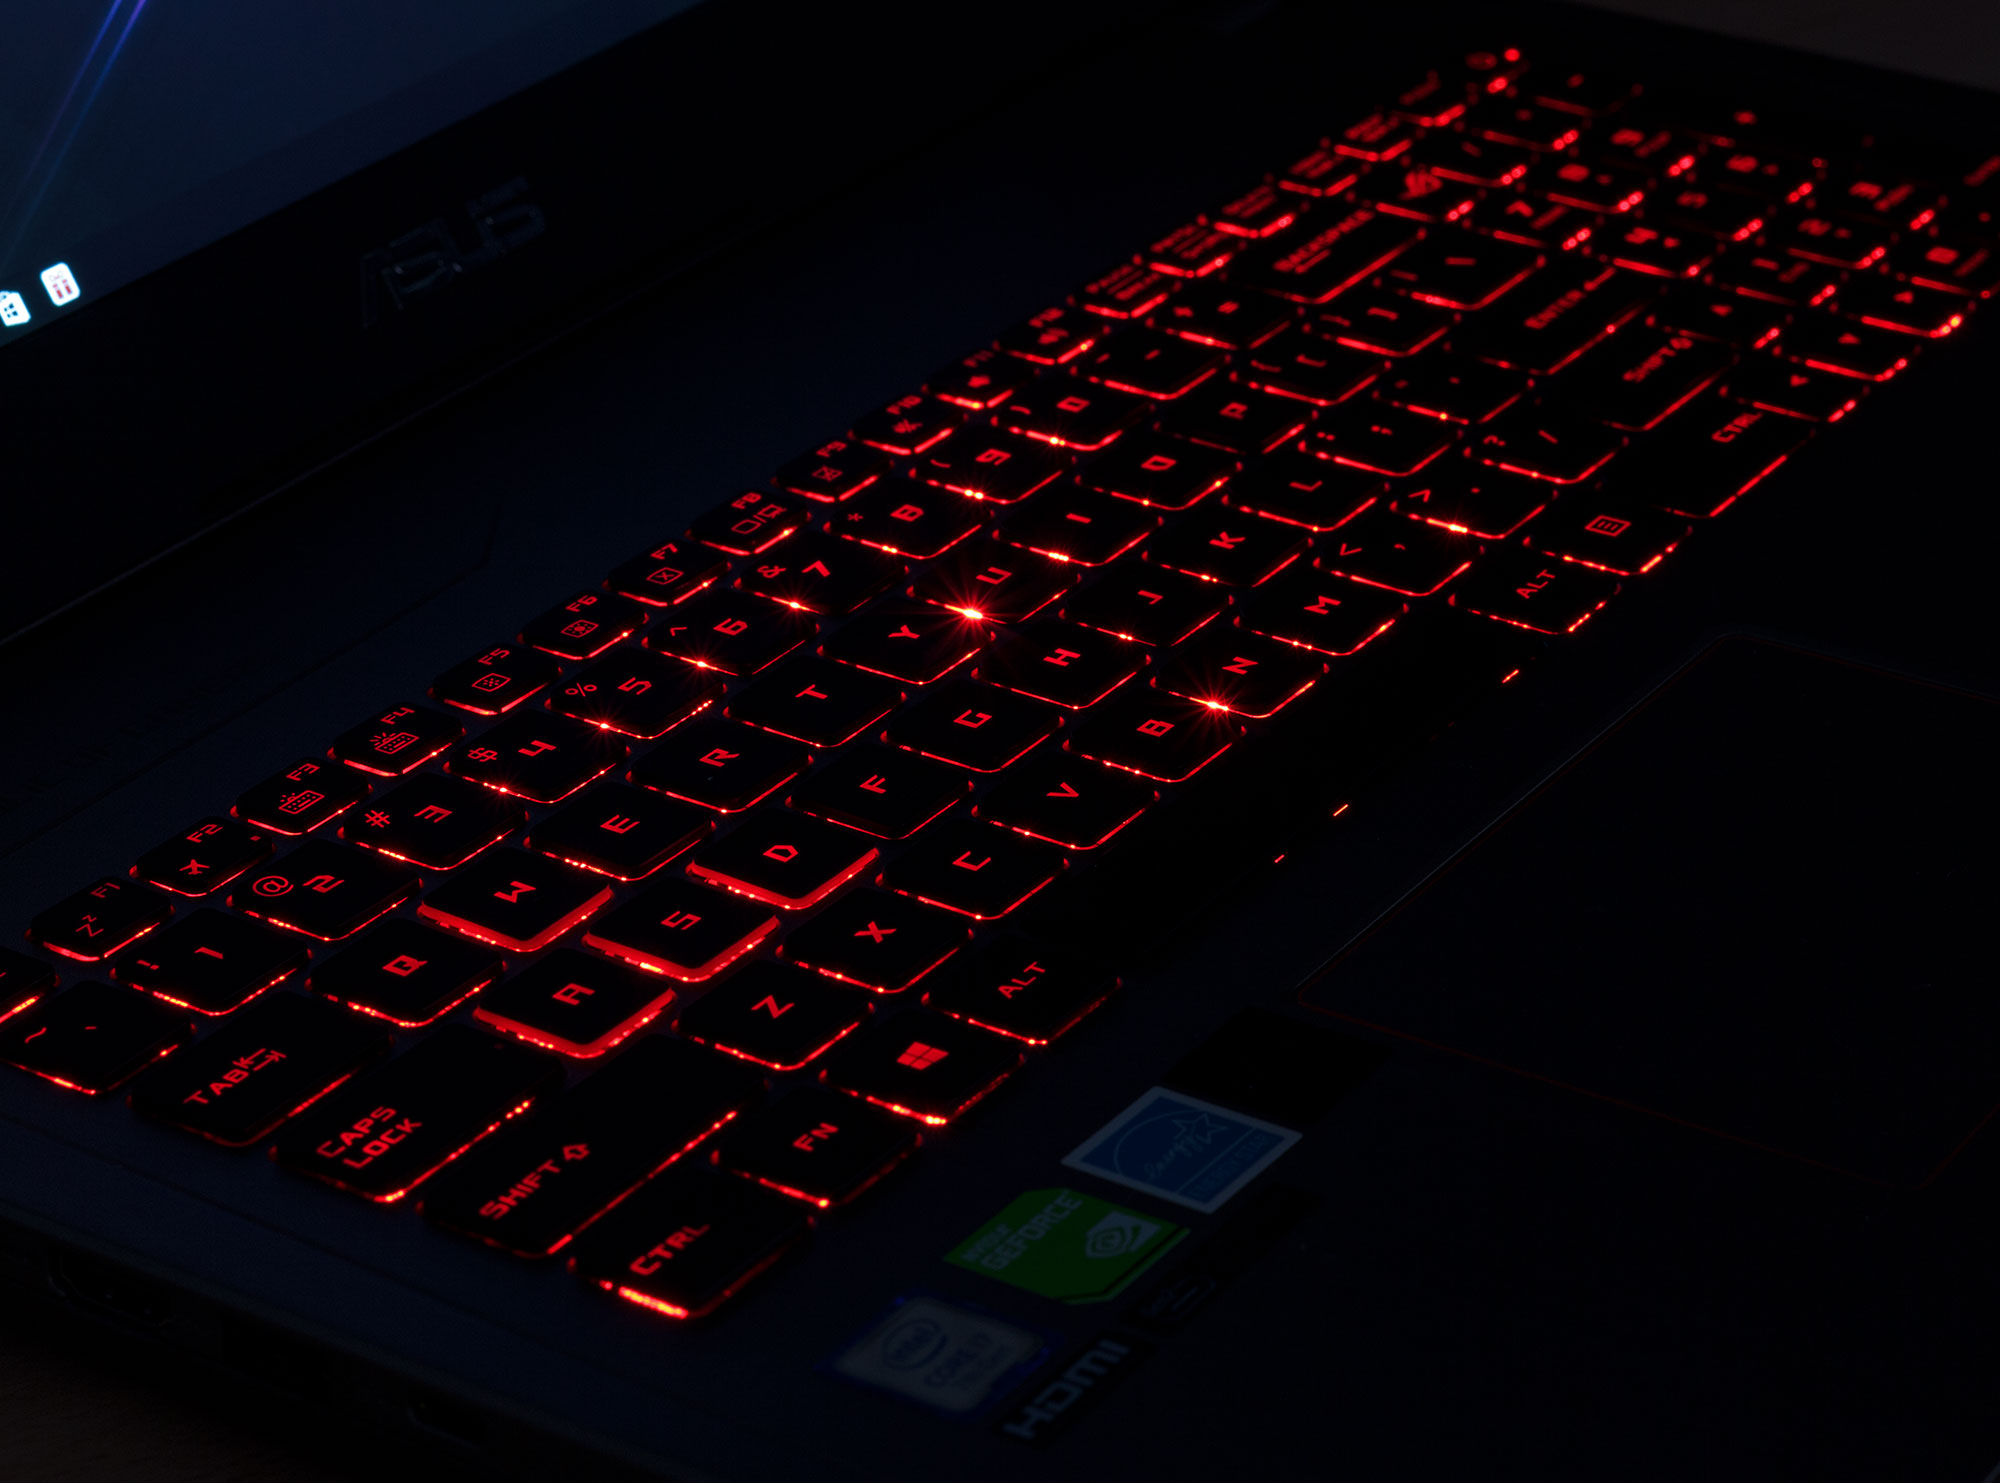 gl502vs-rog-kb